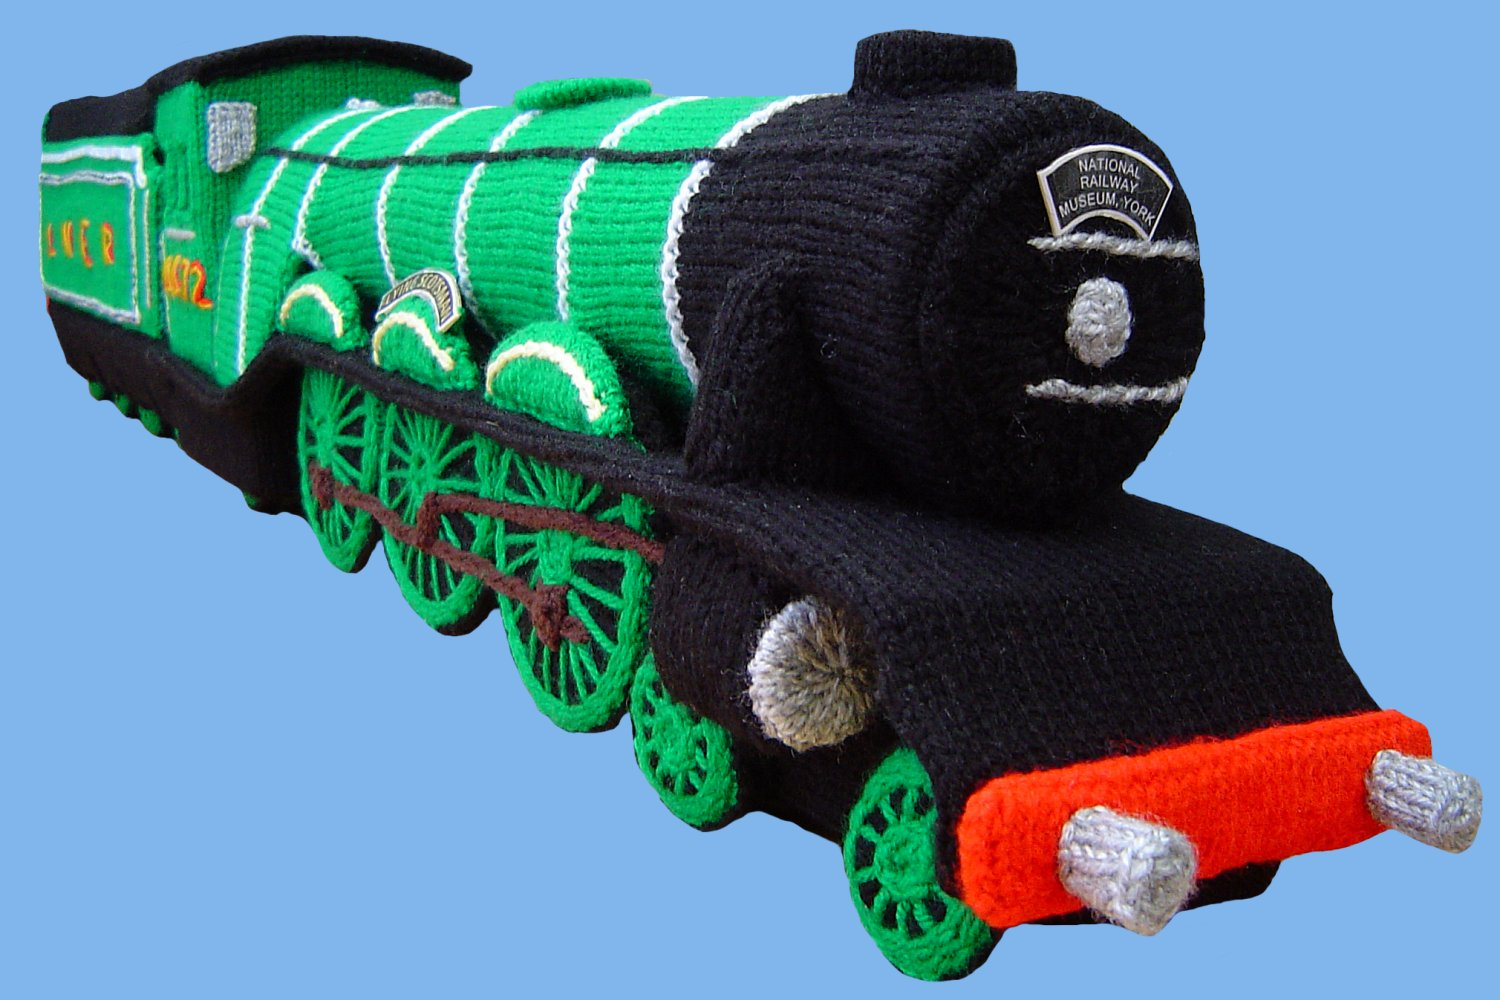 Free Novelty Knitting Patterns : Clare Scope-Farrell Novelty Knitting Patterns - News - Choo-choo! Its th...